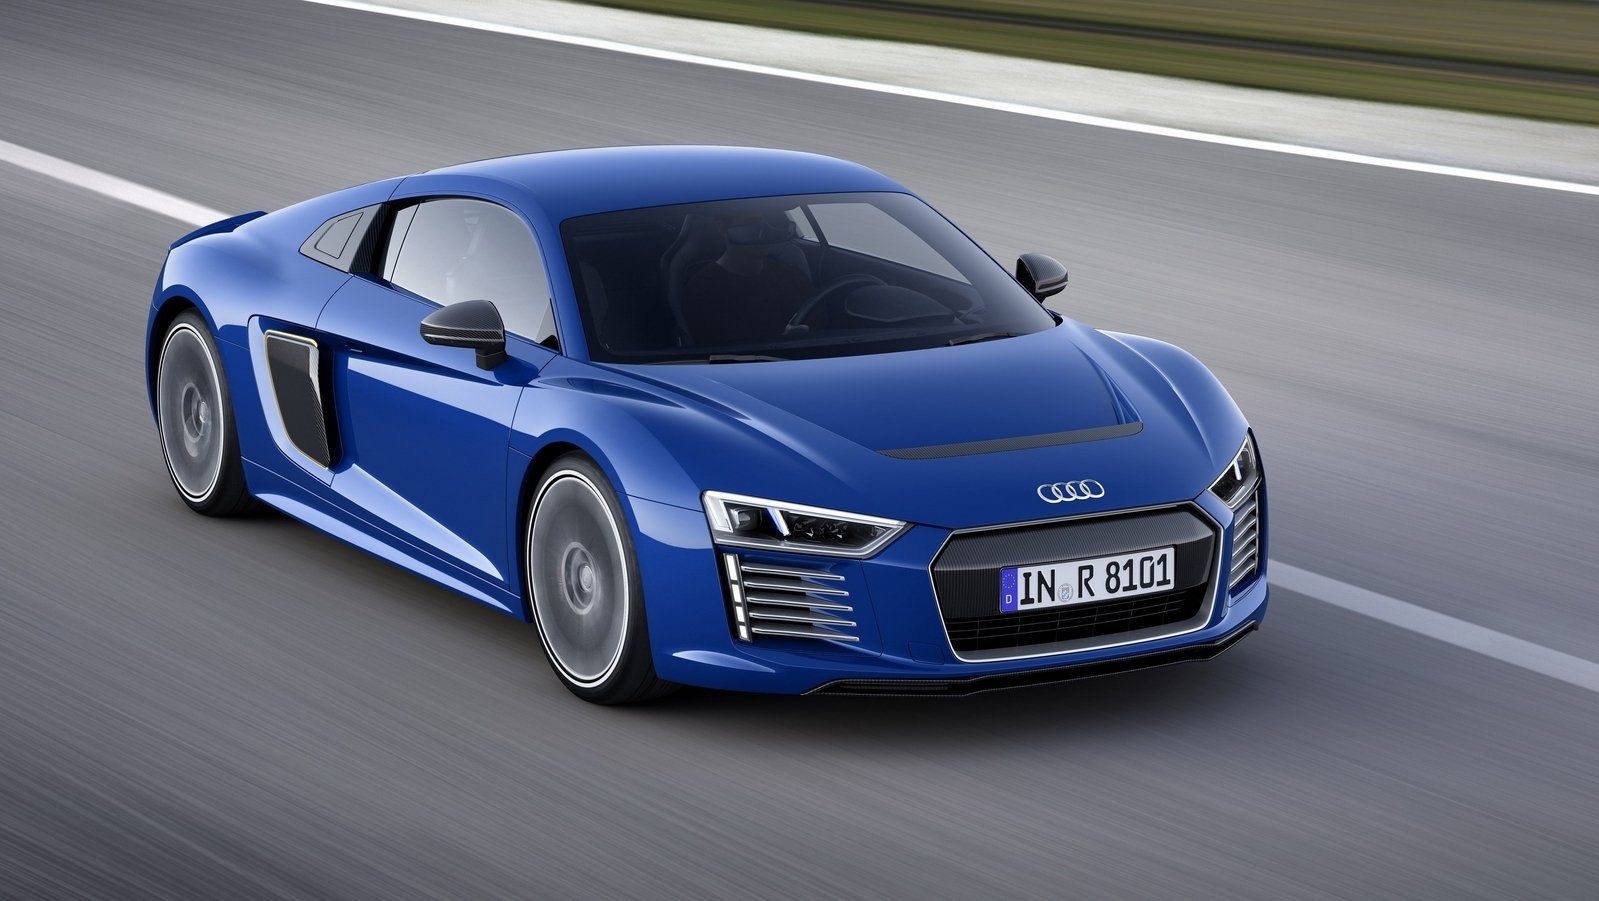 2016 audi r8 e tron picture 619559 car review top speed. Black Bedroom Furniture Sets. Home Design Ideas